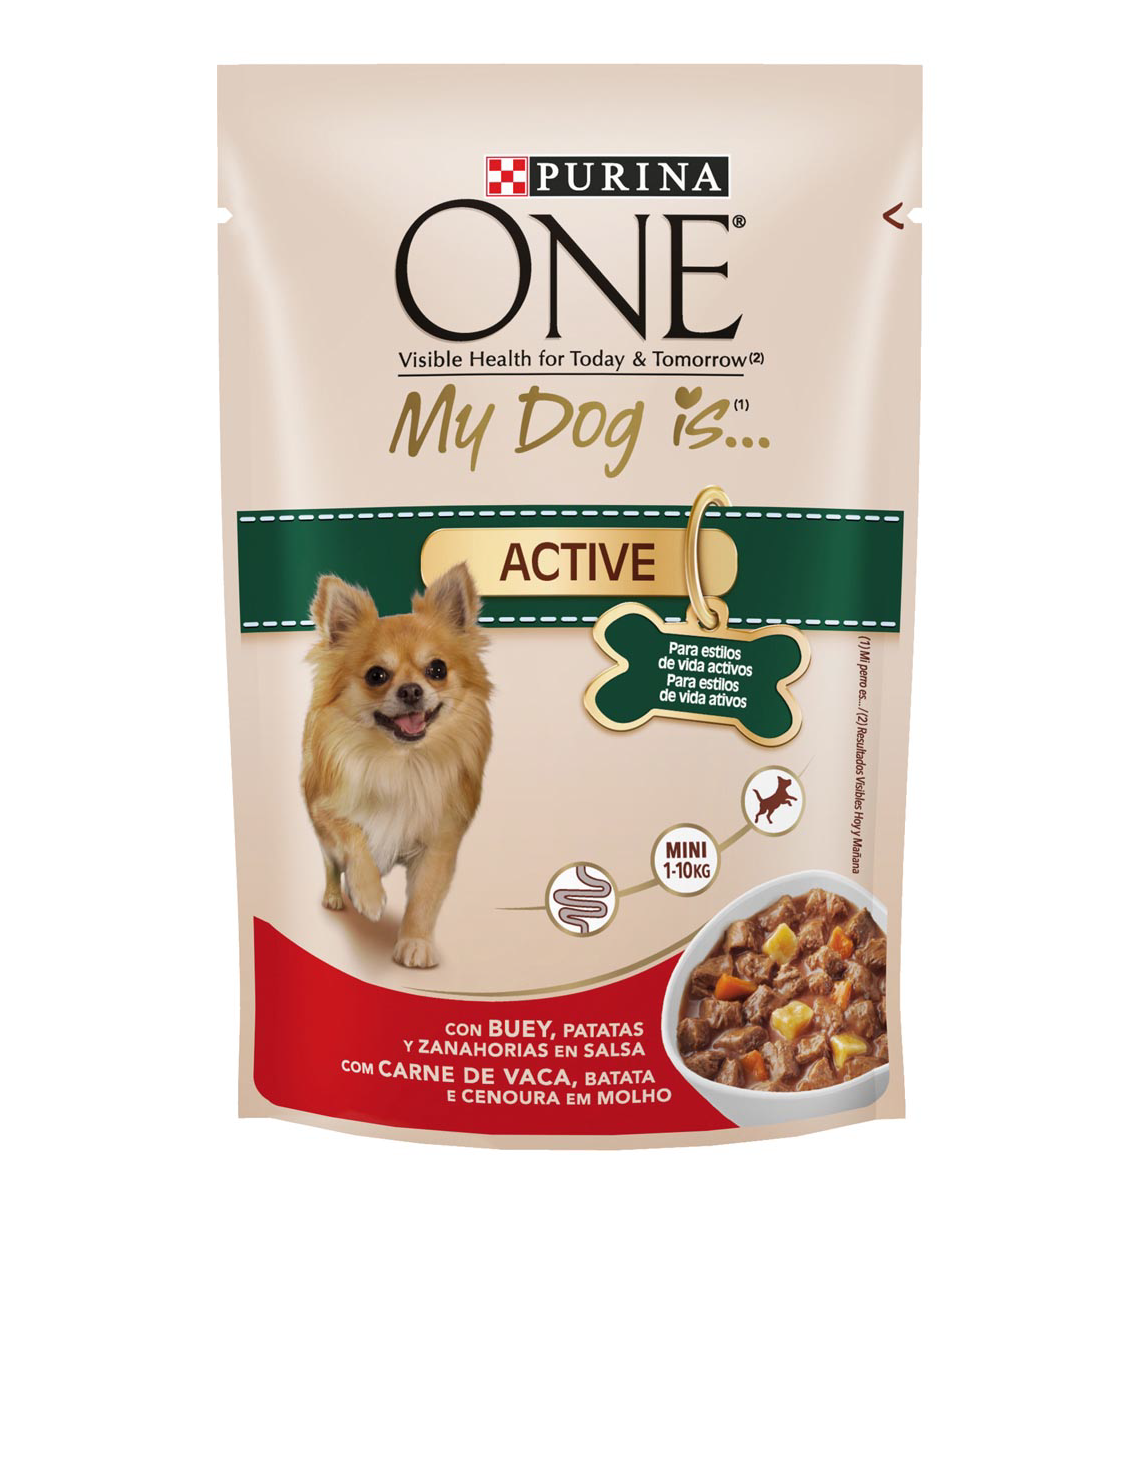 Purina One Mini my dog is active alimento perros mini activos con buey zanahorias con patatas en salsa de 100g. en bolsa